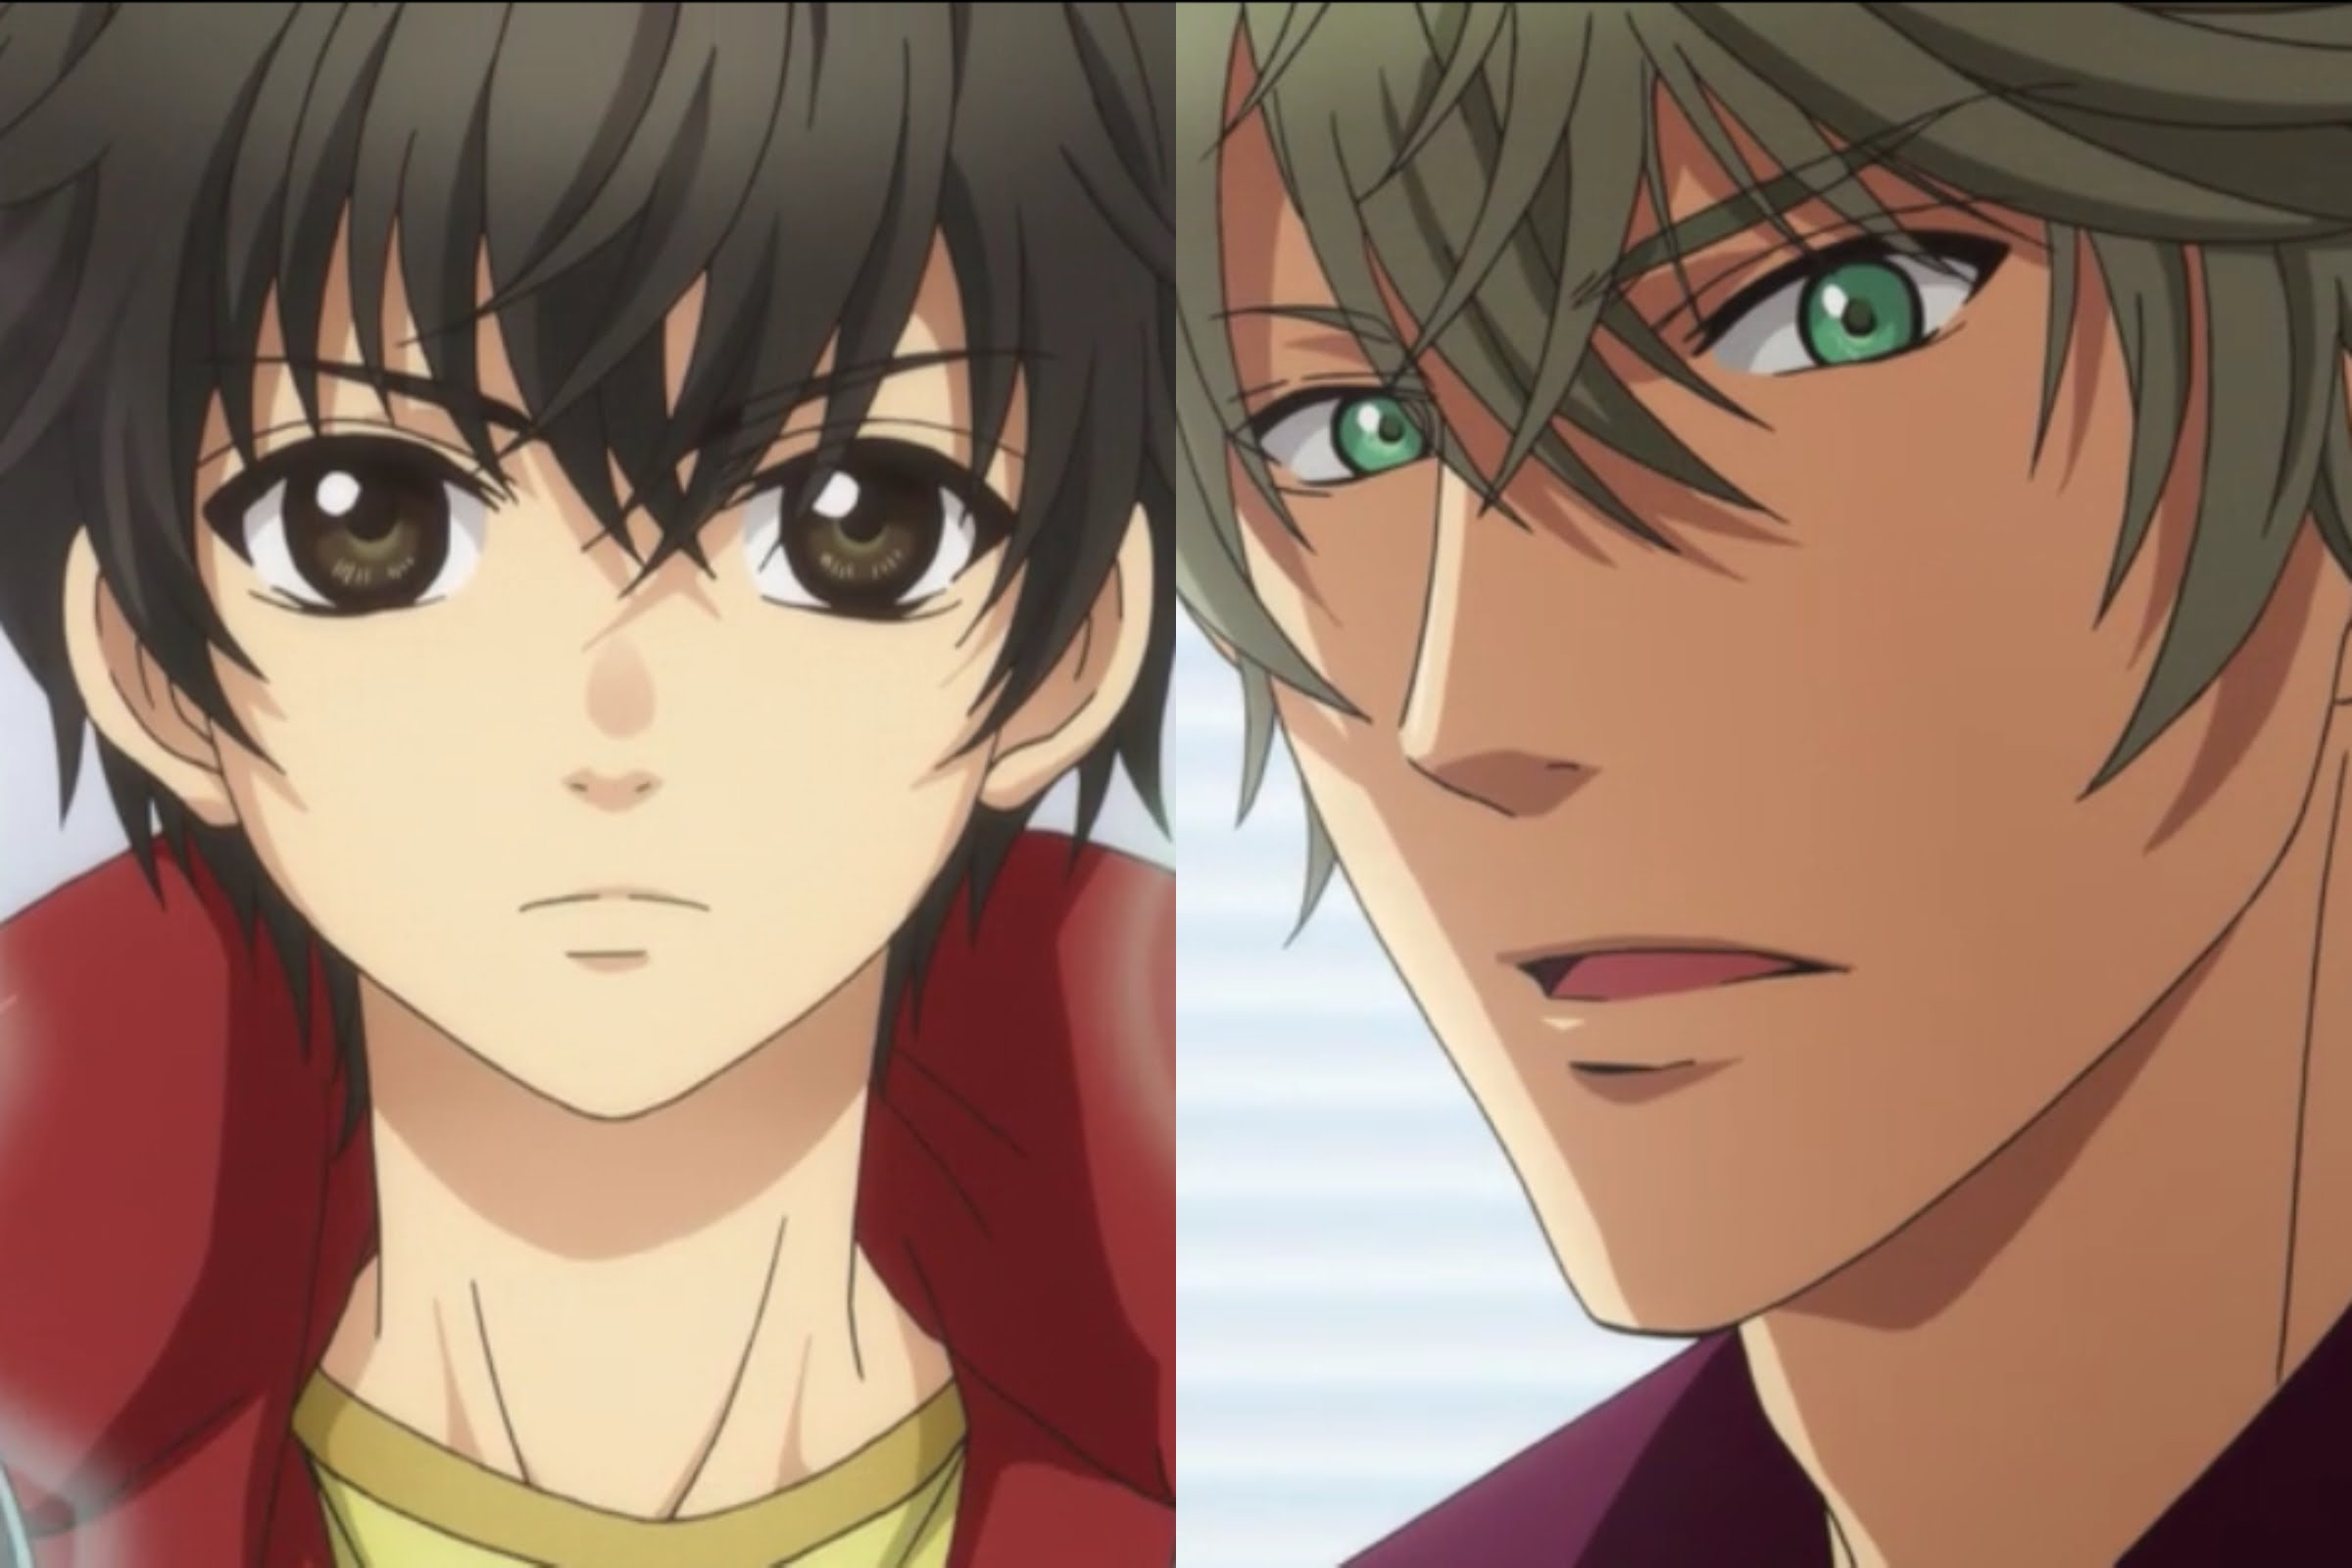 REACTION: Super Lovers Episode 2 スーパーラヴァーズ Anime Review ...